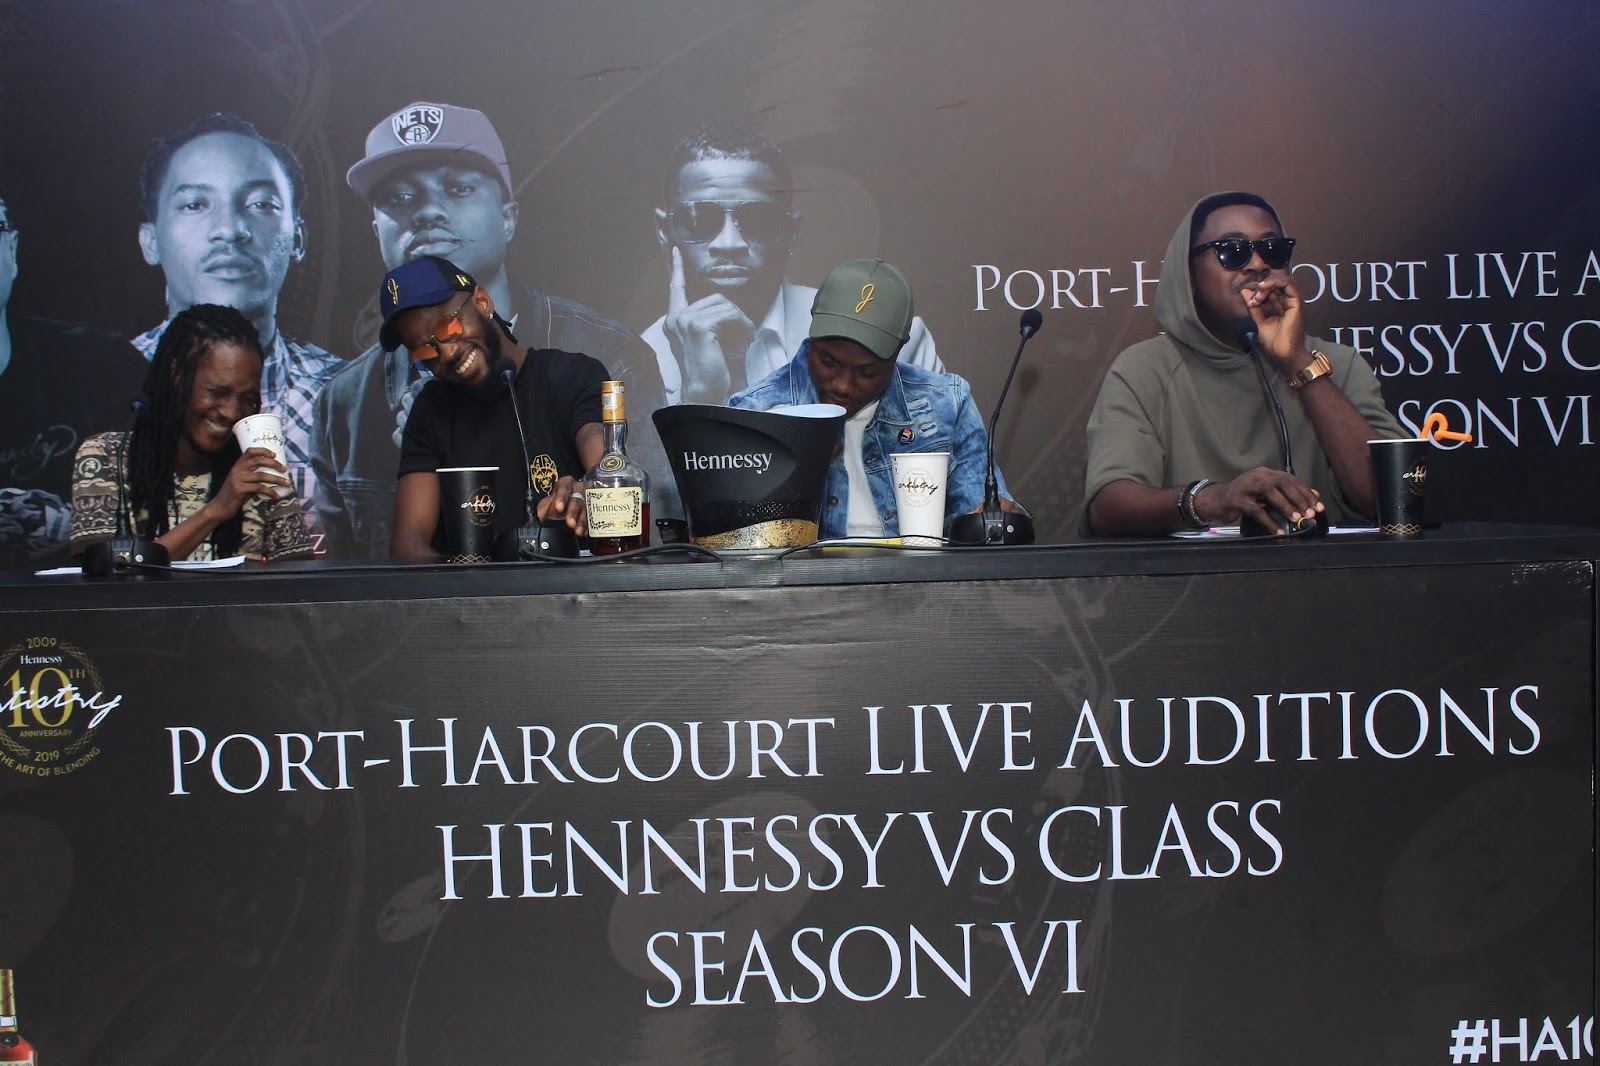 (PHOTOS) HENNESSY VS CLASS ROUNDS UP AUDITIONS WITH THE FINAL ONLINE SUBMISSIONS